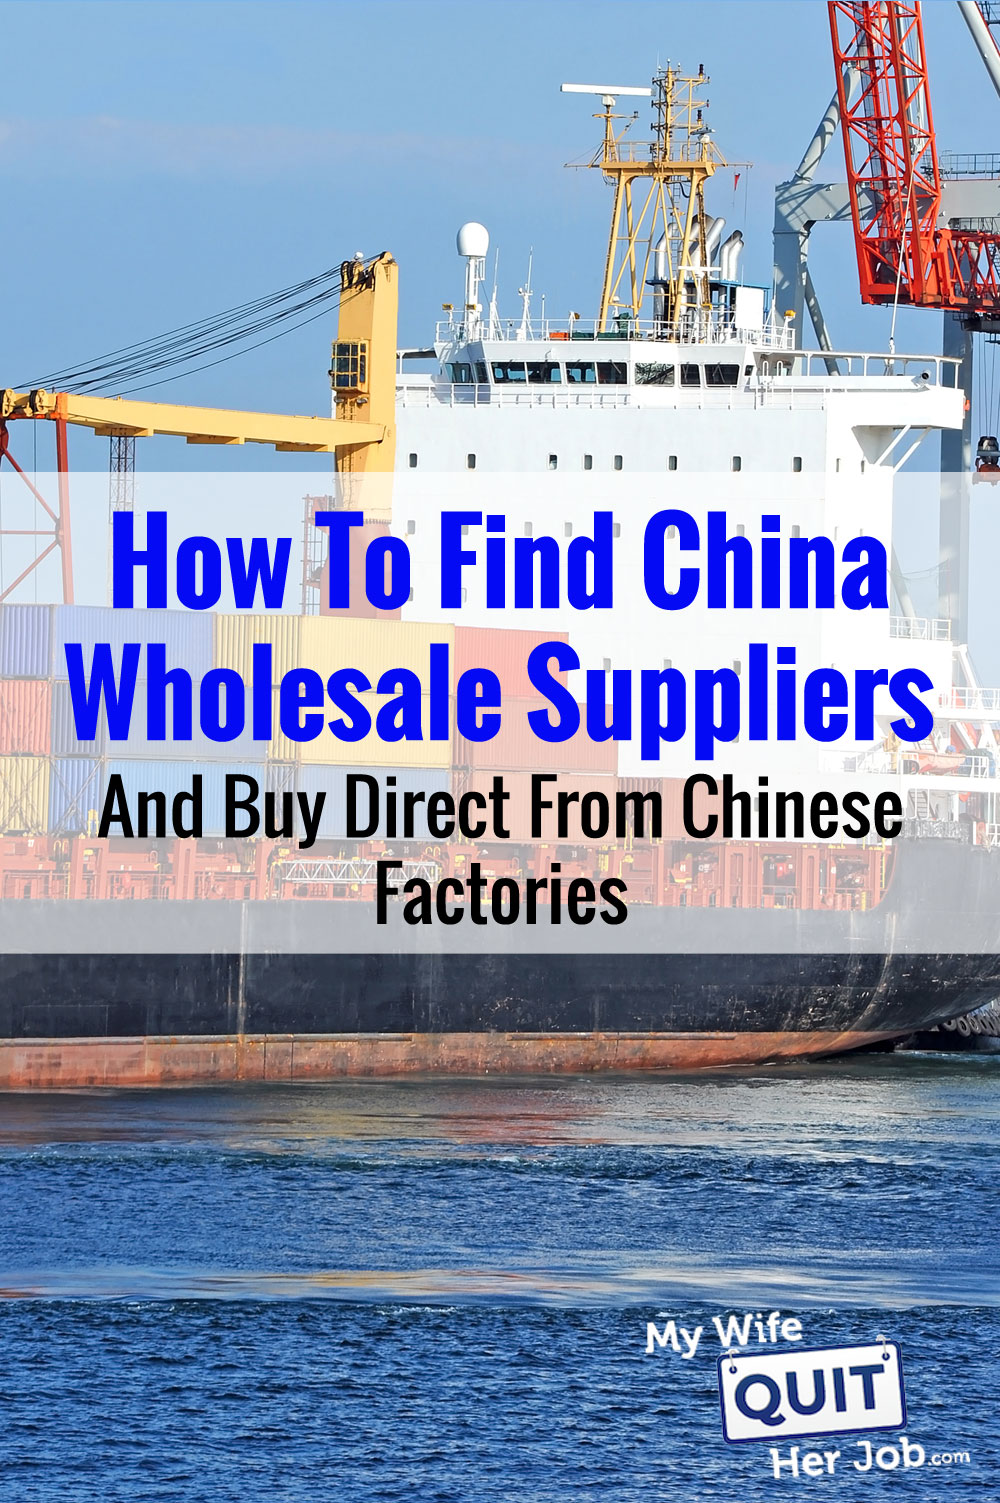 How To Find China Wholesale Suppliers And Import Direct From Chinese Factories